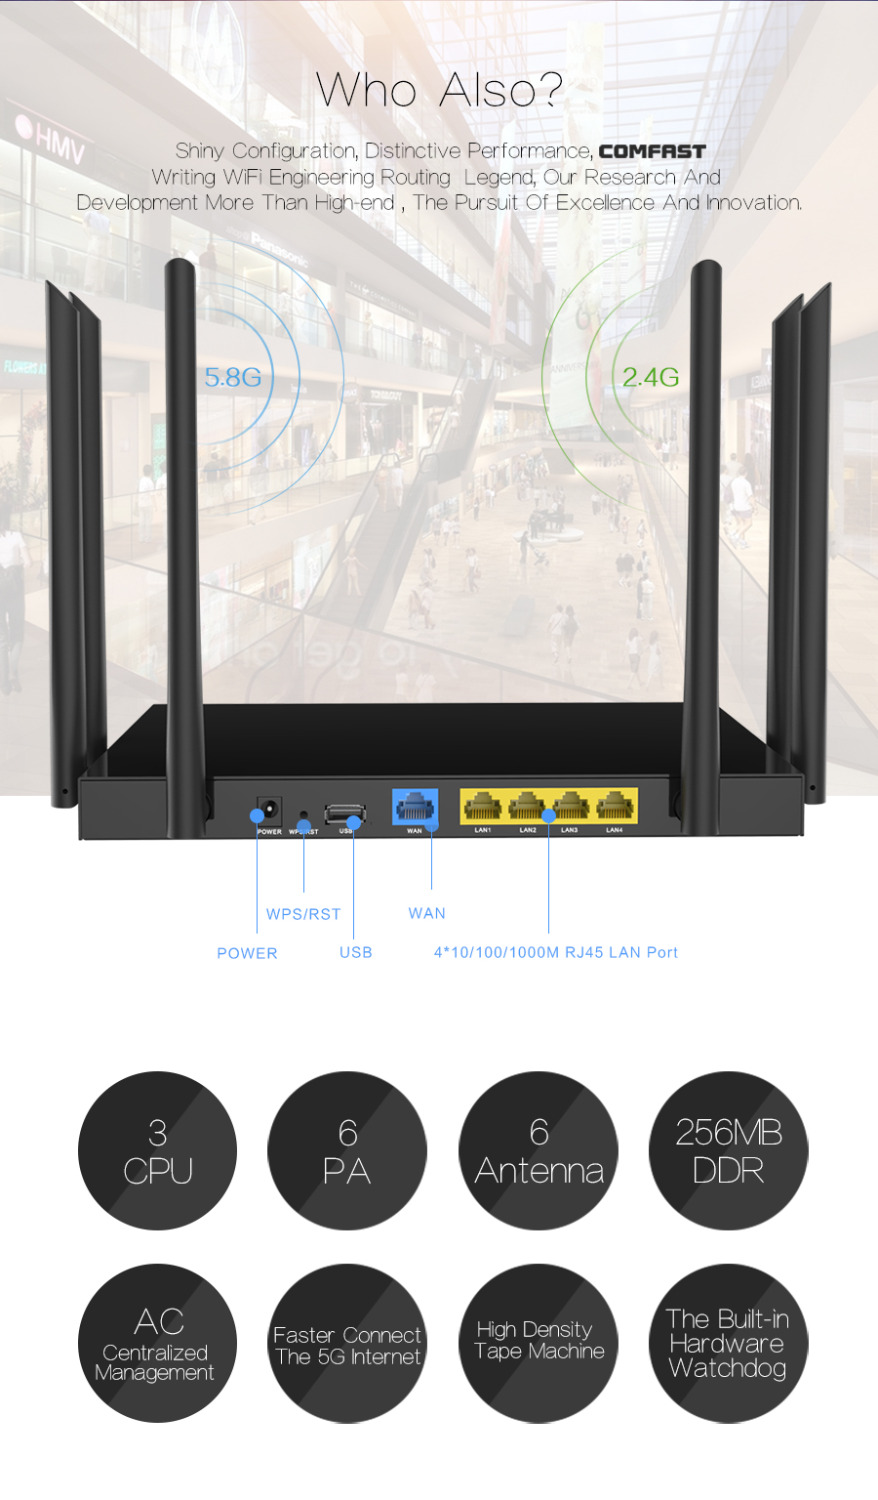 Comfast WR650AC 802.11 AC Up 1750Mbps Dual Band 2.4 + 5 GHz Gigabit WiFi Router Wi Fi Repeater 4 lan 1 wan Open dd wrt router